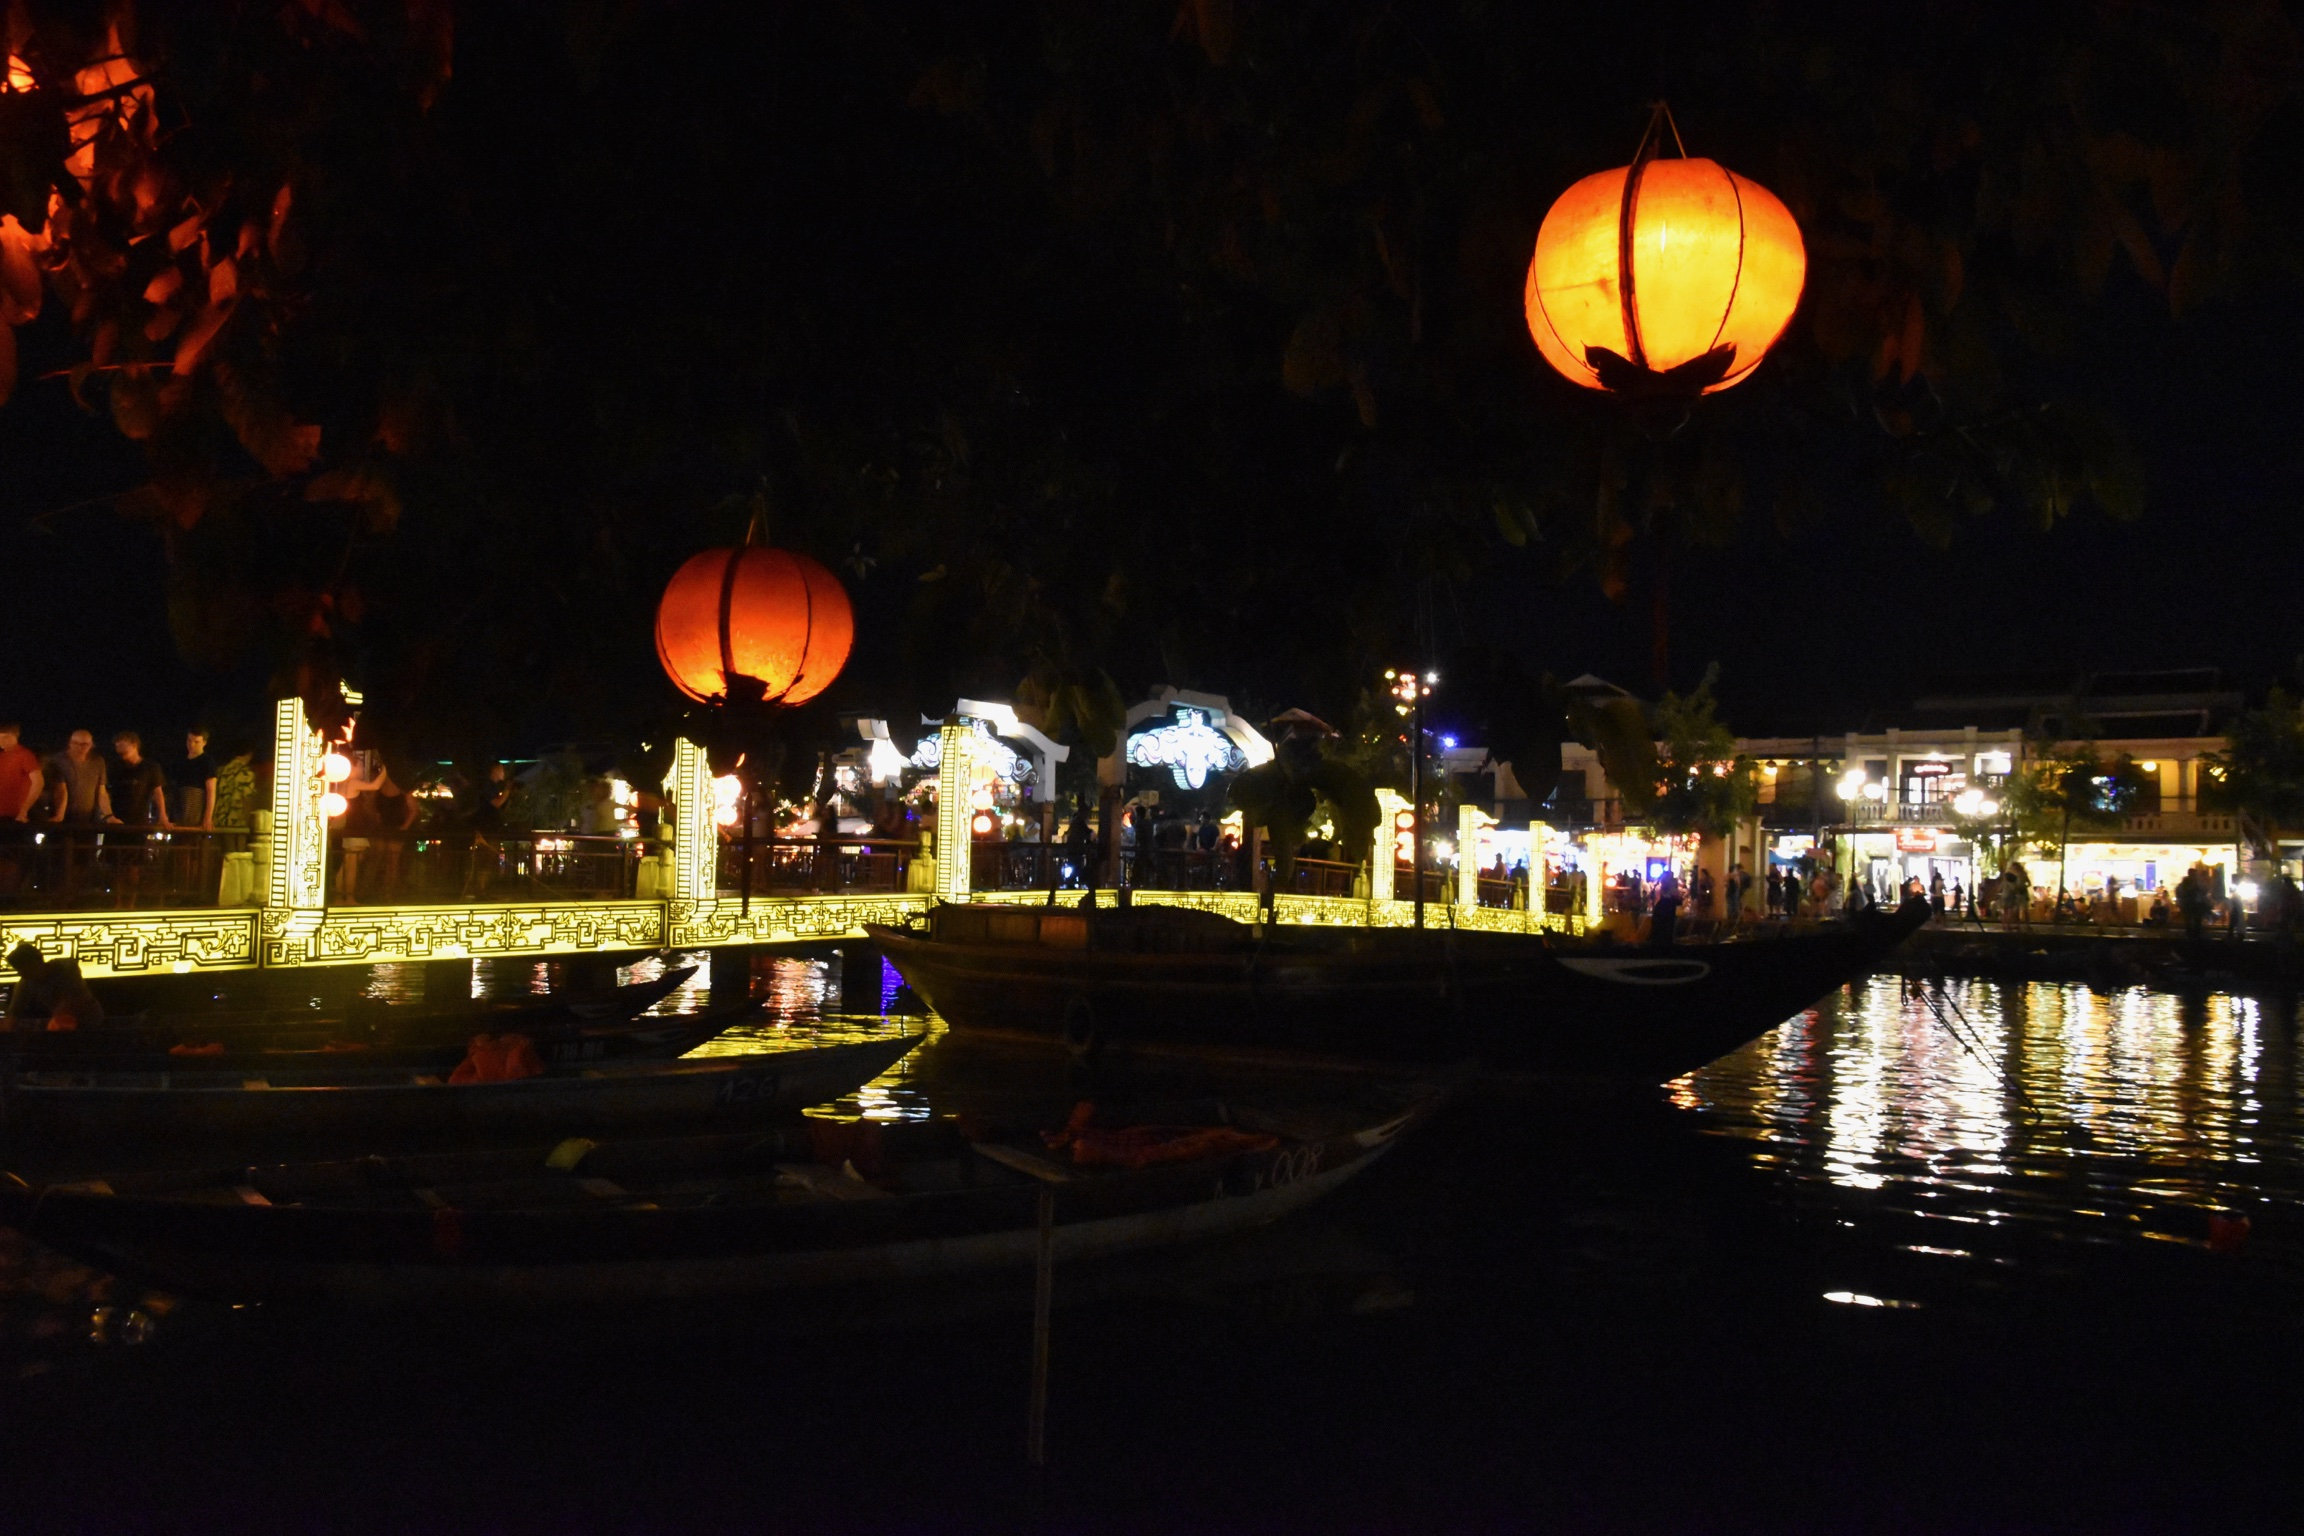 night scene in Hoi An